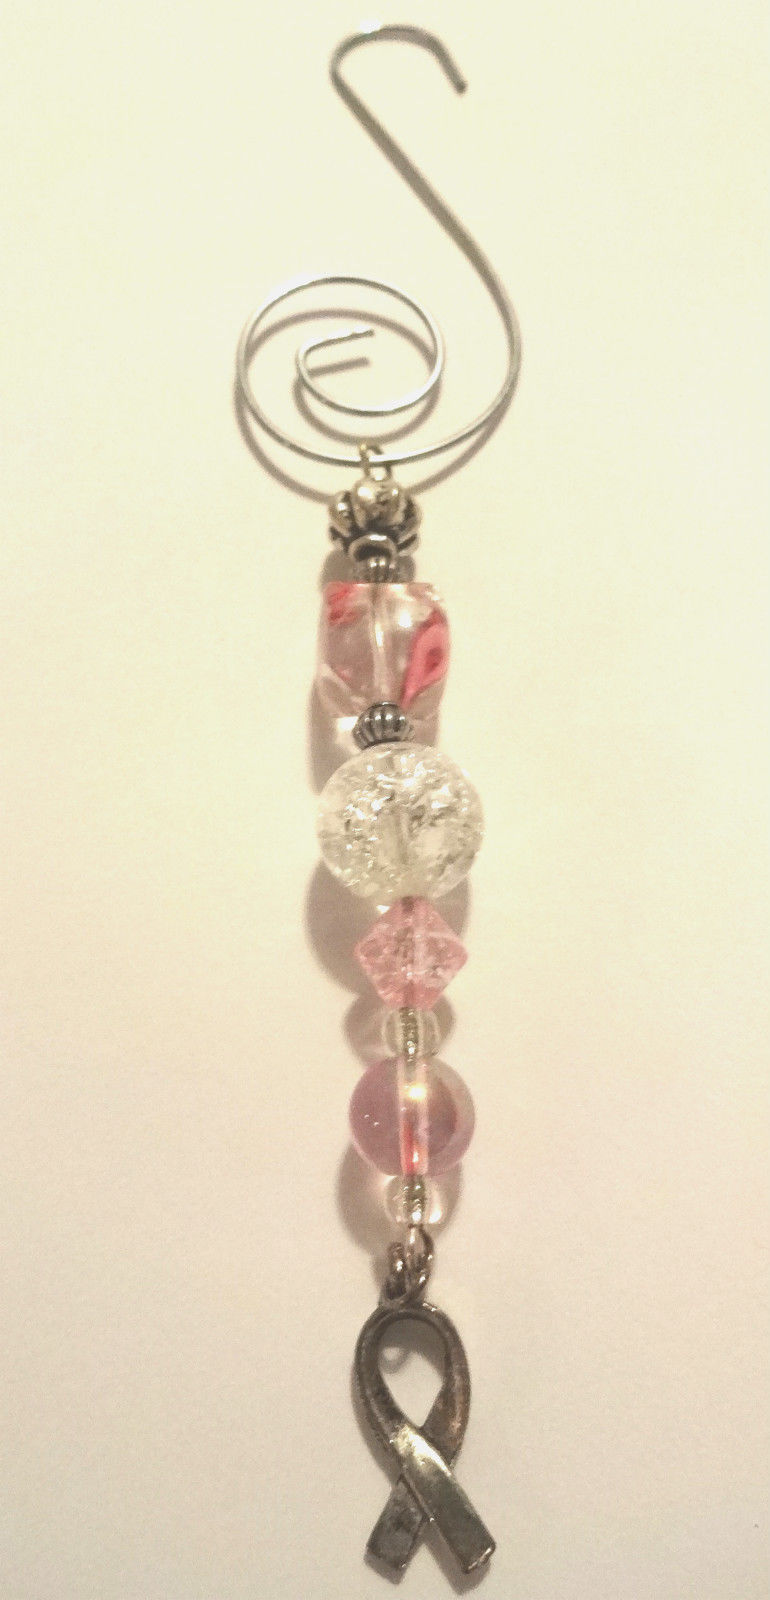 Hand Crafted Pink Breast Cancer Awareness Ornament With Silver Hope Ribbon Charm image 8